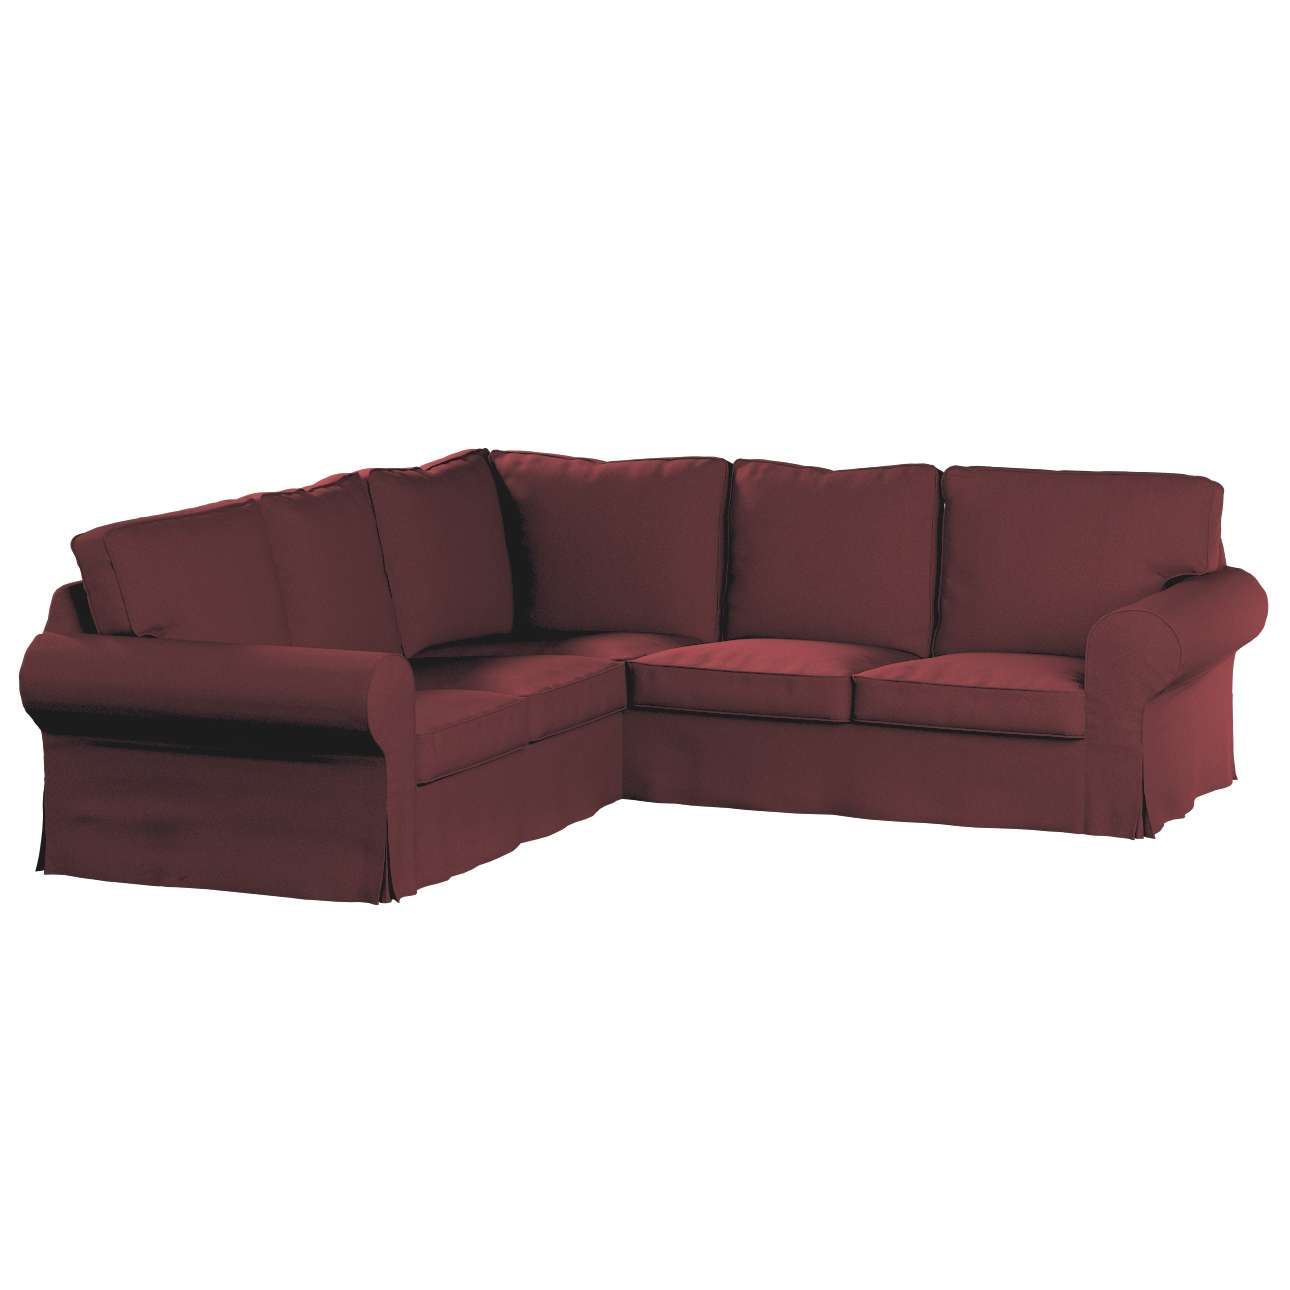 Ektorp kampinė sofa Ektorp kampinė sofa kolekcijoje Living , audinys: 100-99